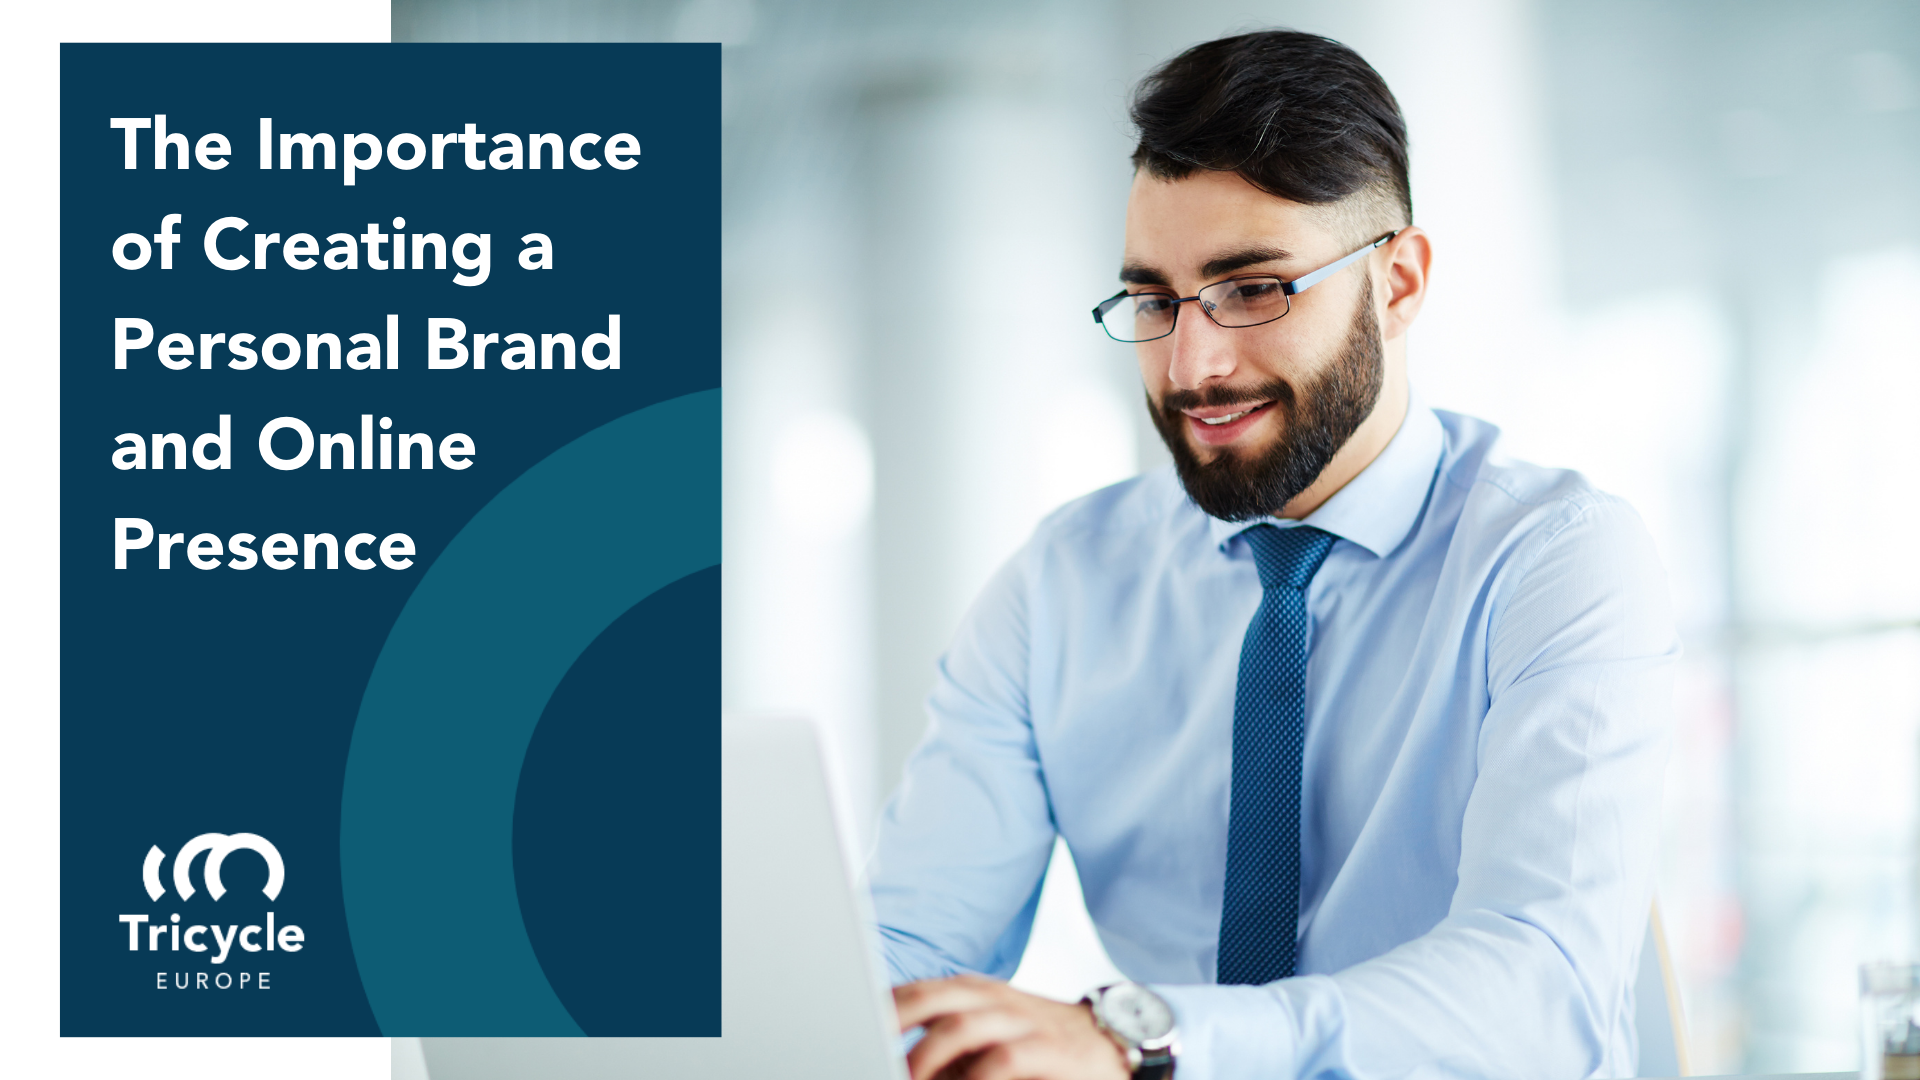 The Importance of Creating a Personal Brand and Online Presence